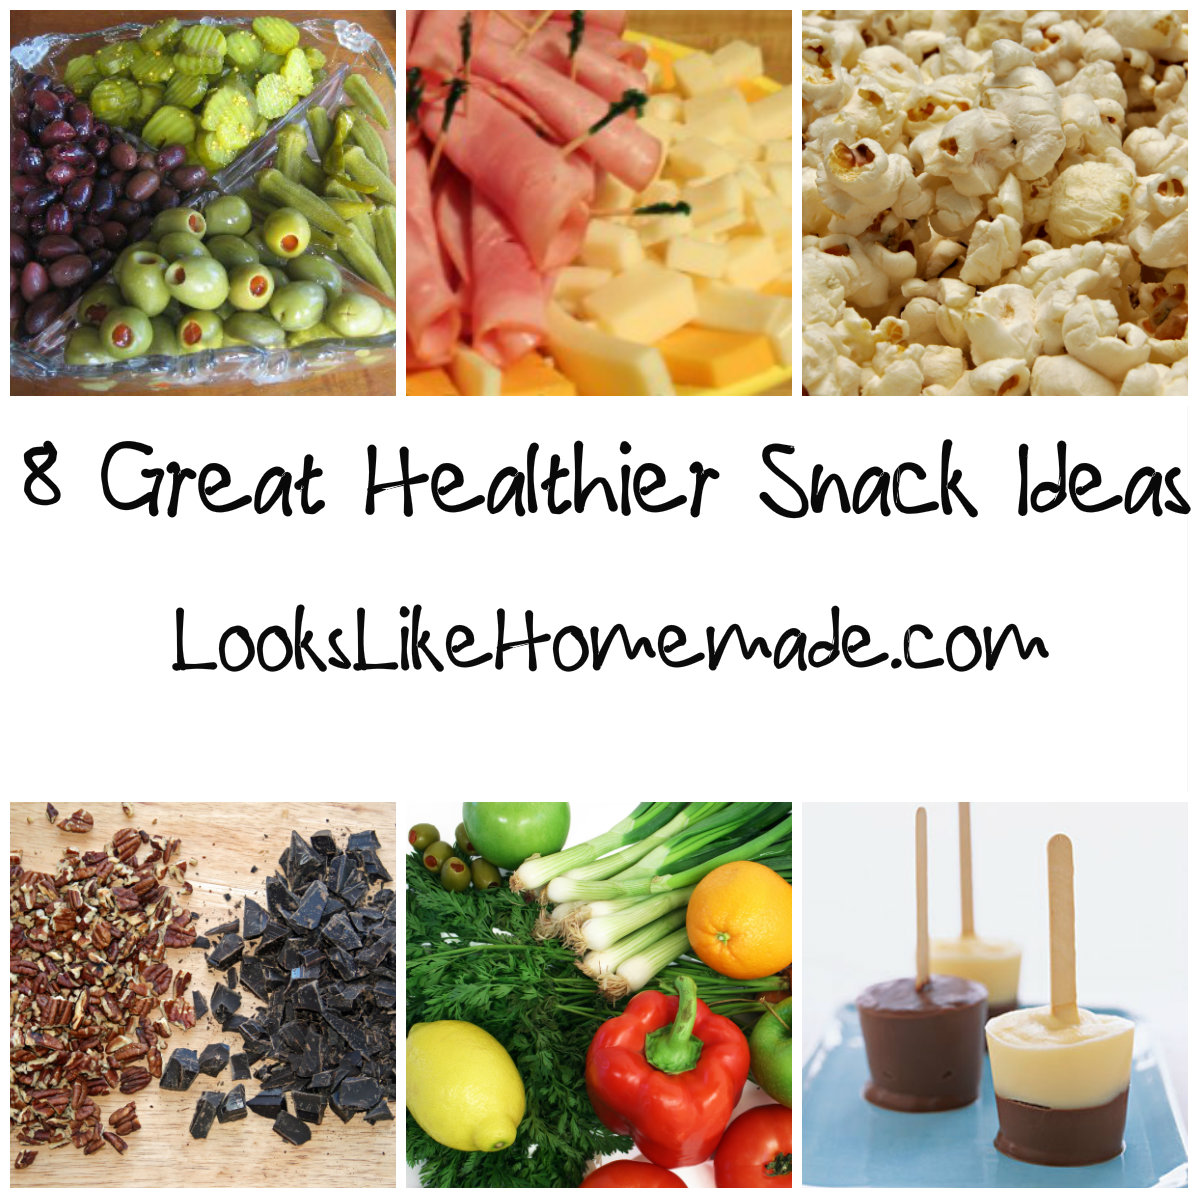 8 Quick Snacks To Make At Home